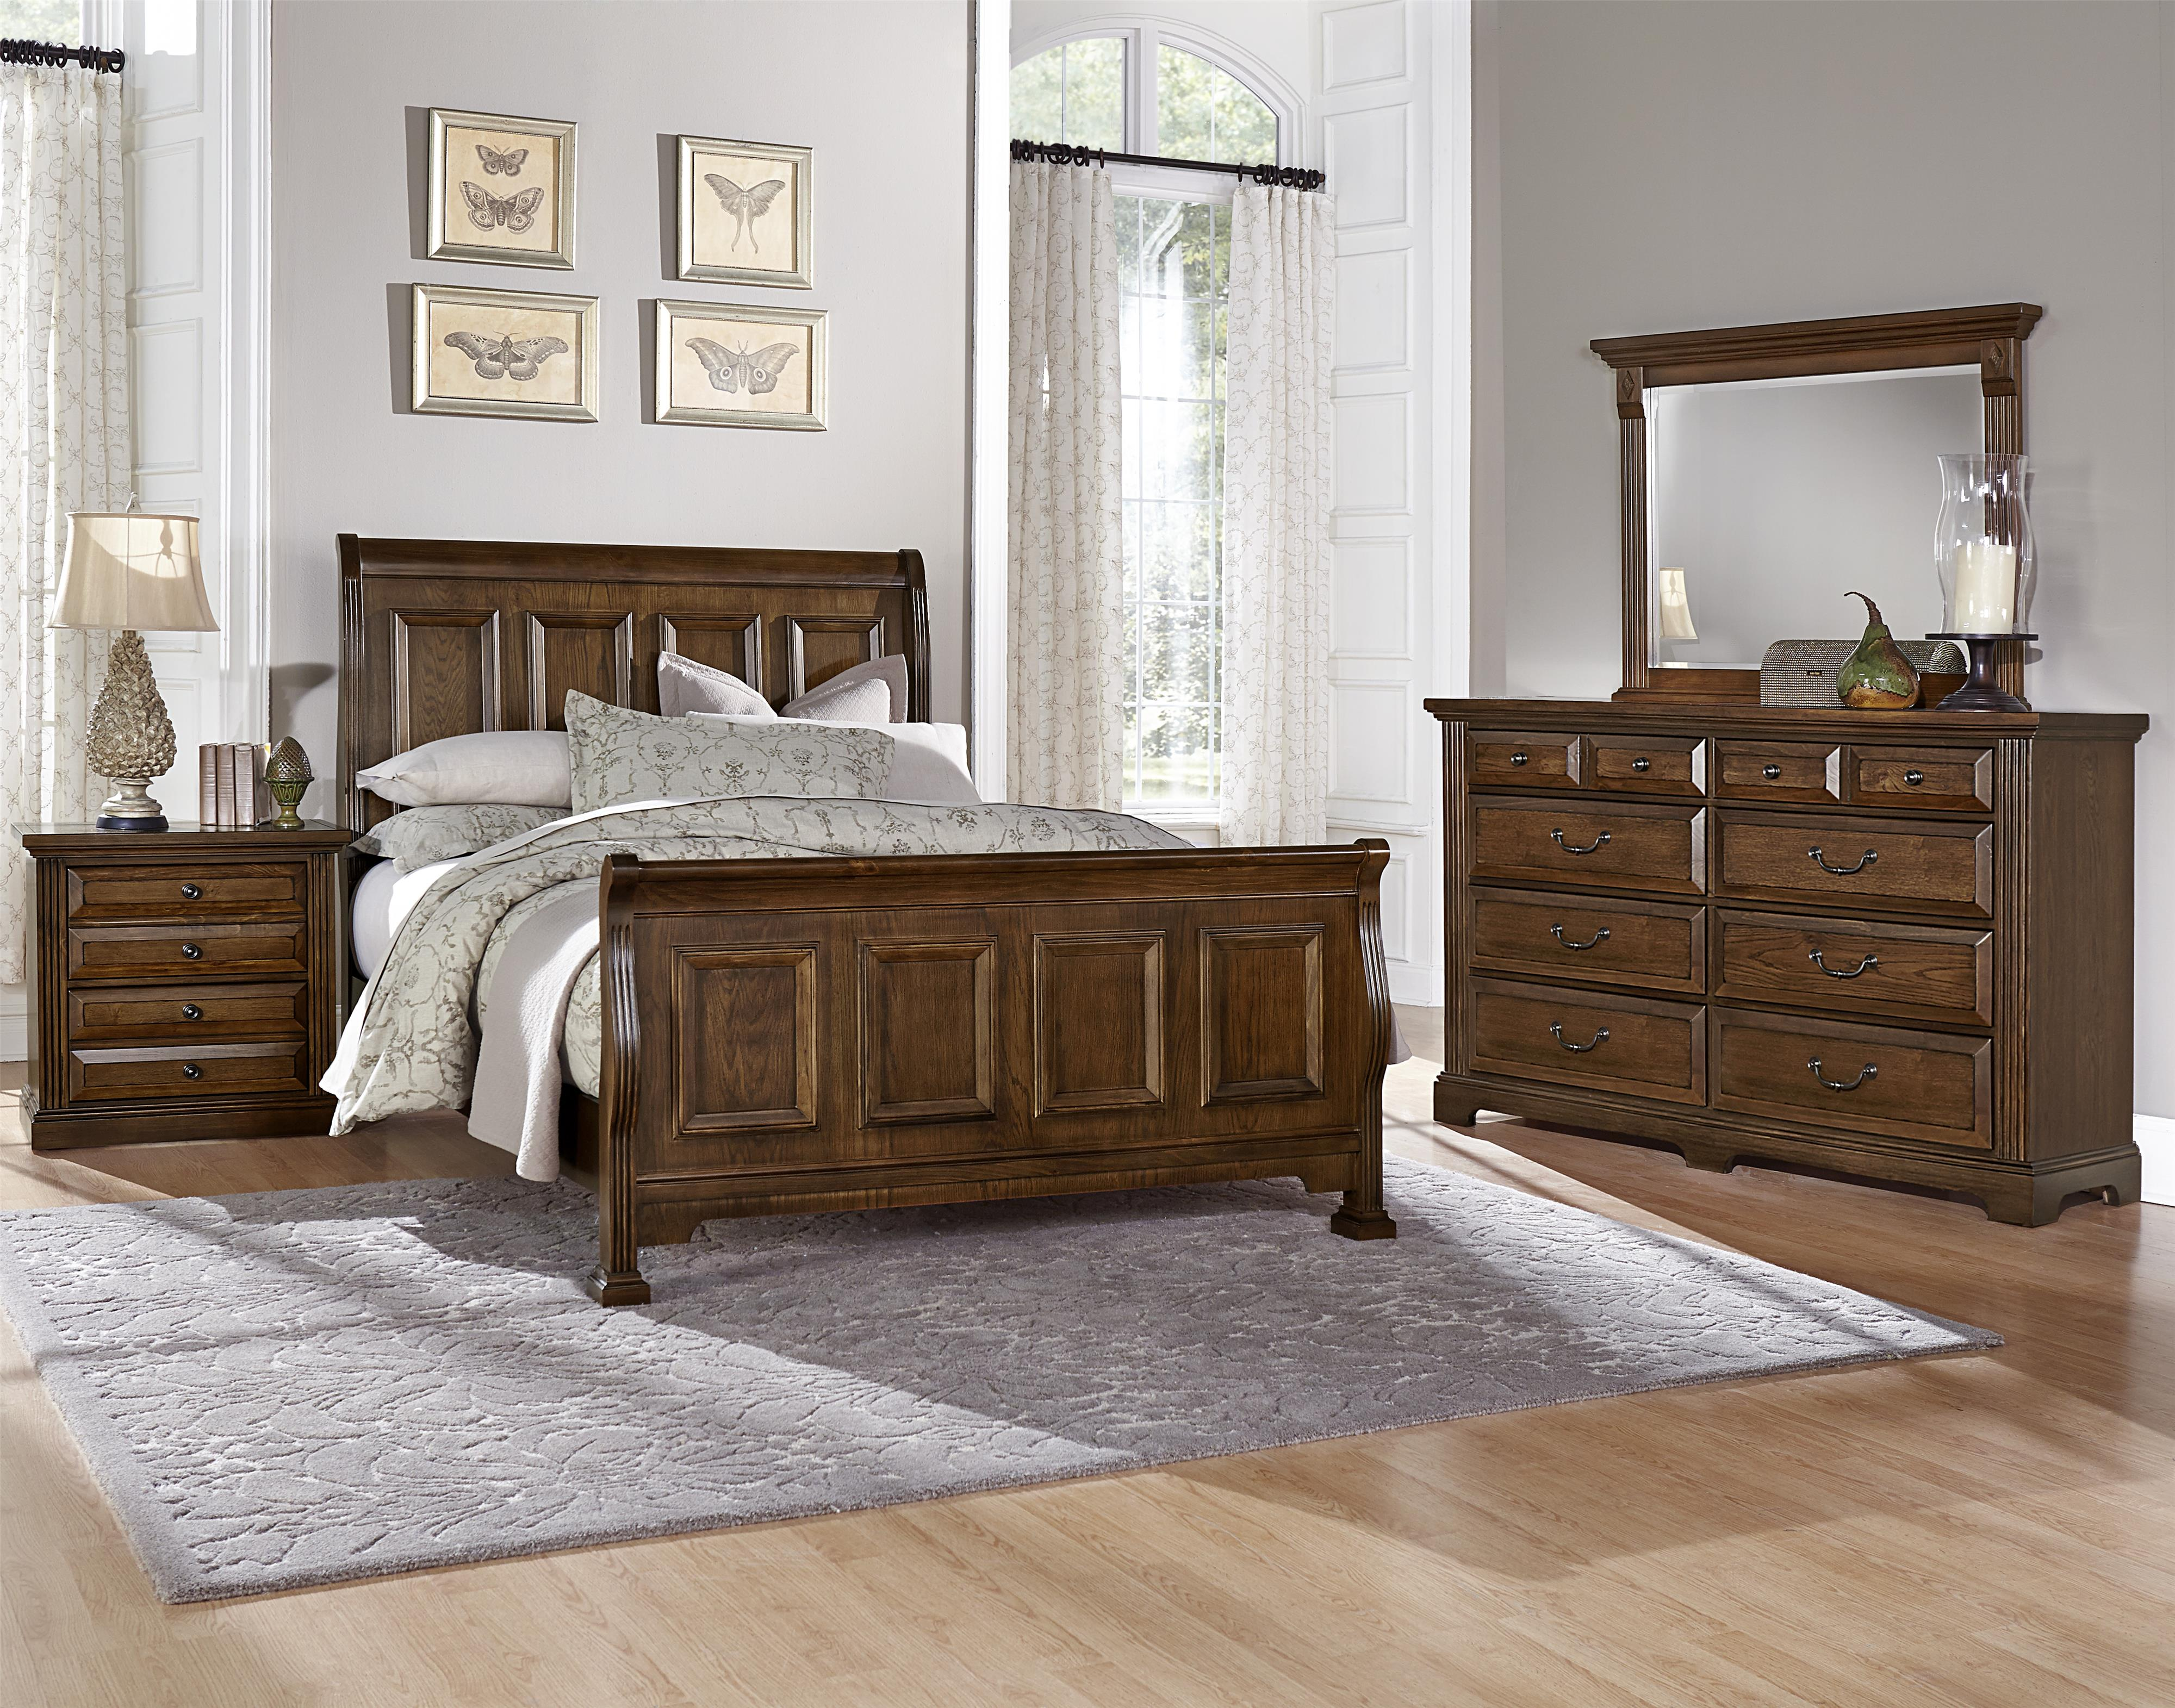 Pleasing Woodlands Queen Bedroom Group By Vaughan Bassett At Turk Furniture Interior Design Ideas Tzicisoteloinfo